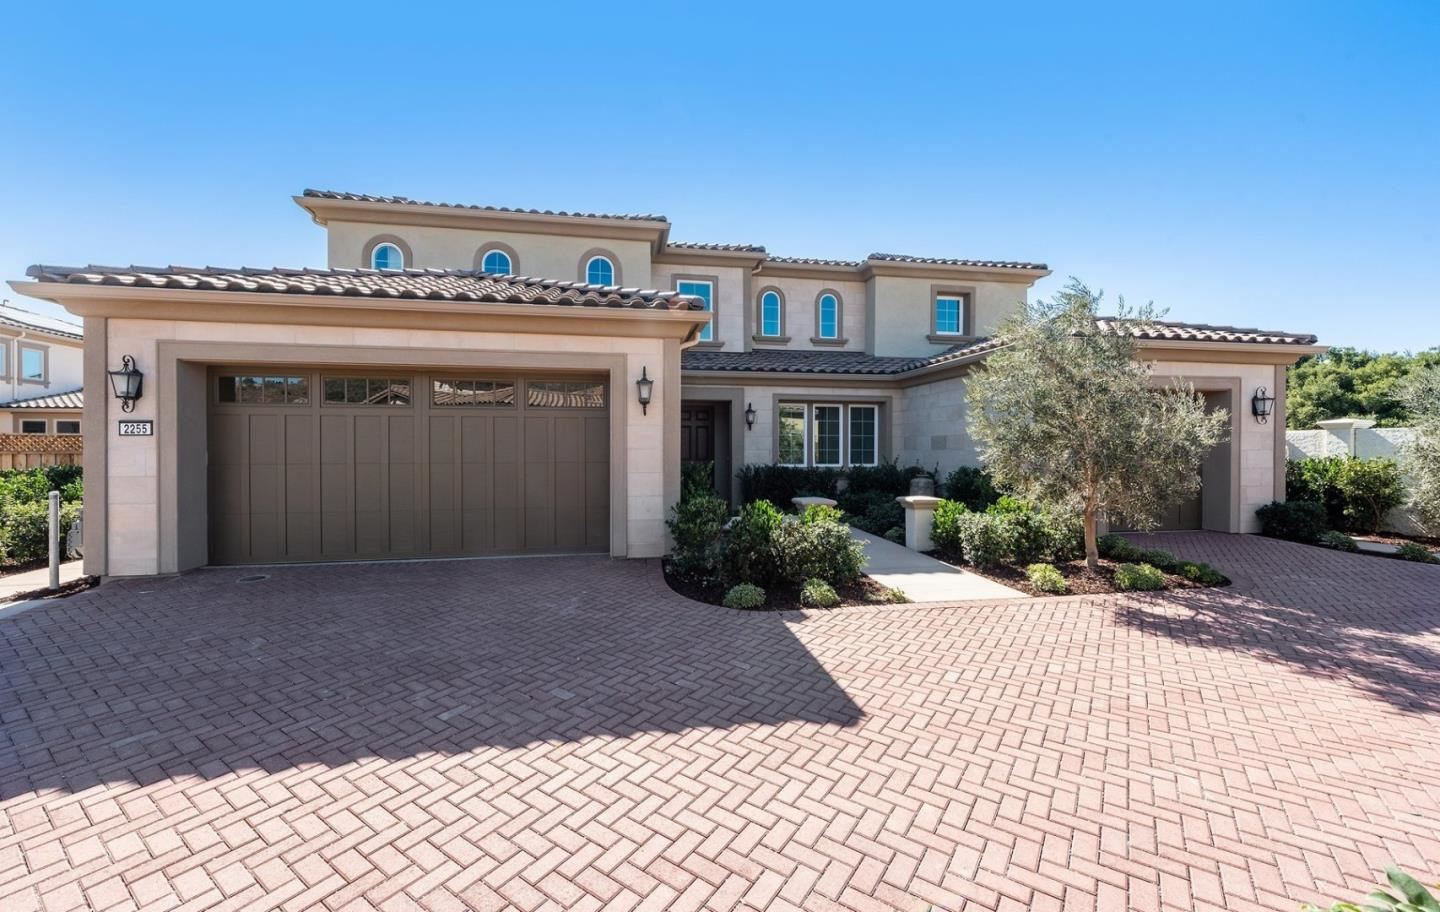 Photo for 2255 Via Orista, MORGAN HILL, CA 95037 (MLS # ML81766610)